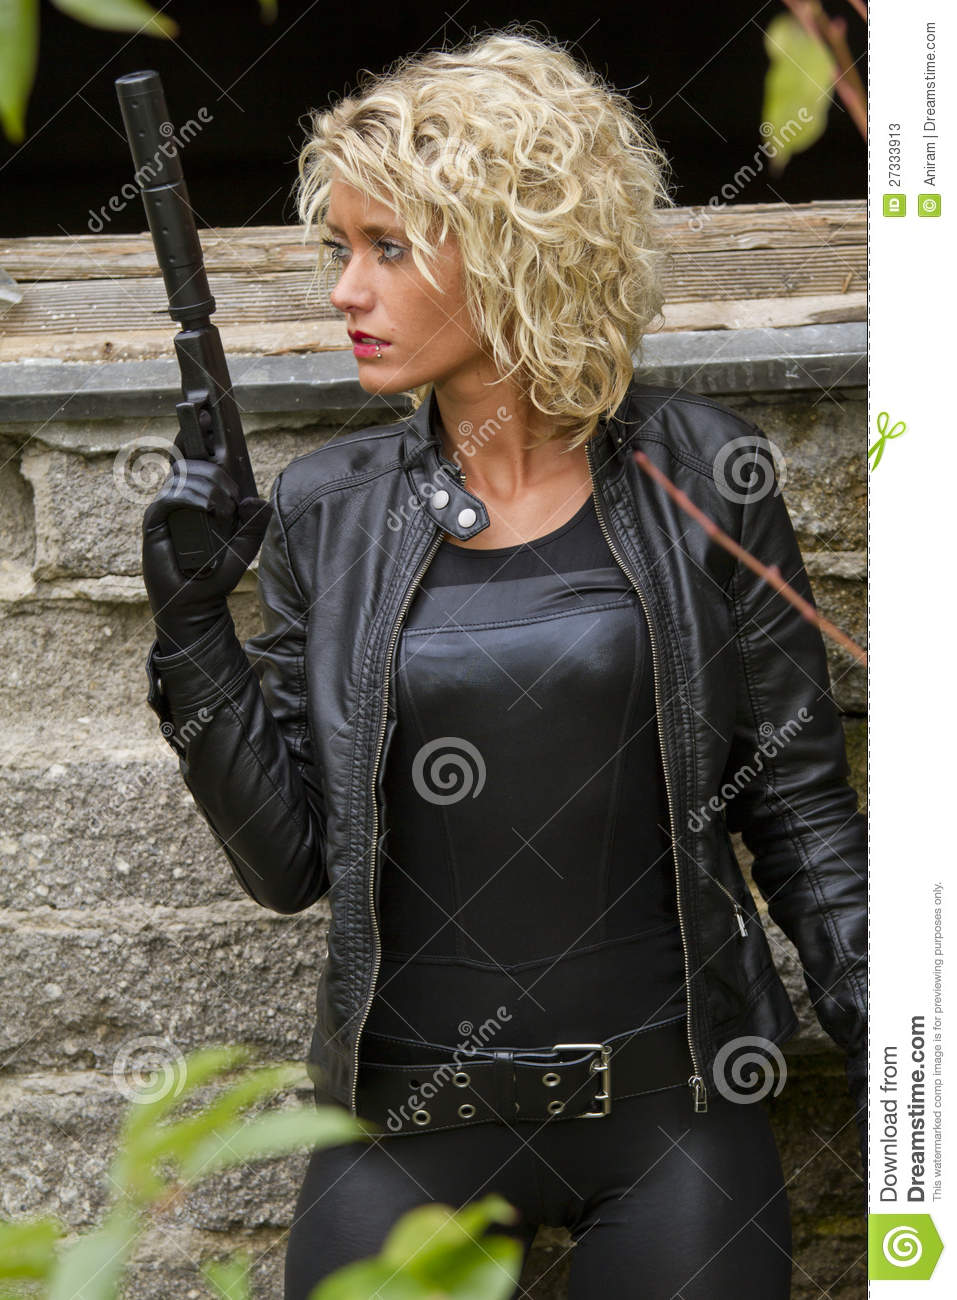 Ladies leather shooting gloves - Woman In Leather Catsuit And Gloves With A Silencer Gun Outdoor